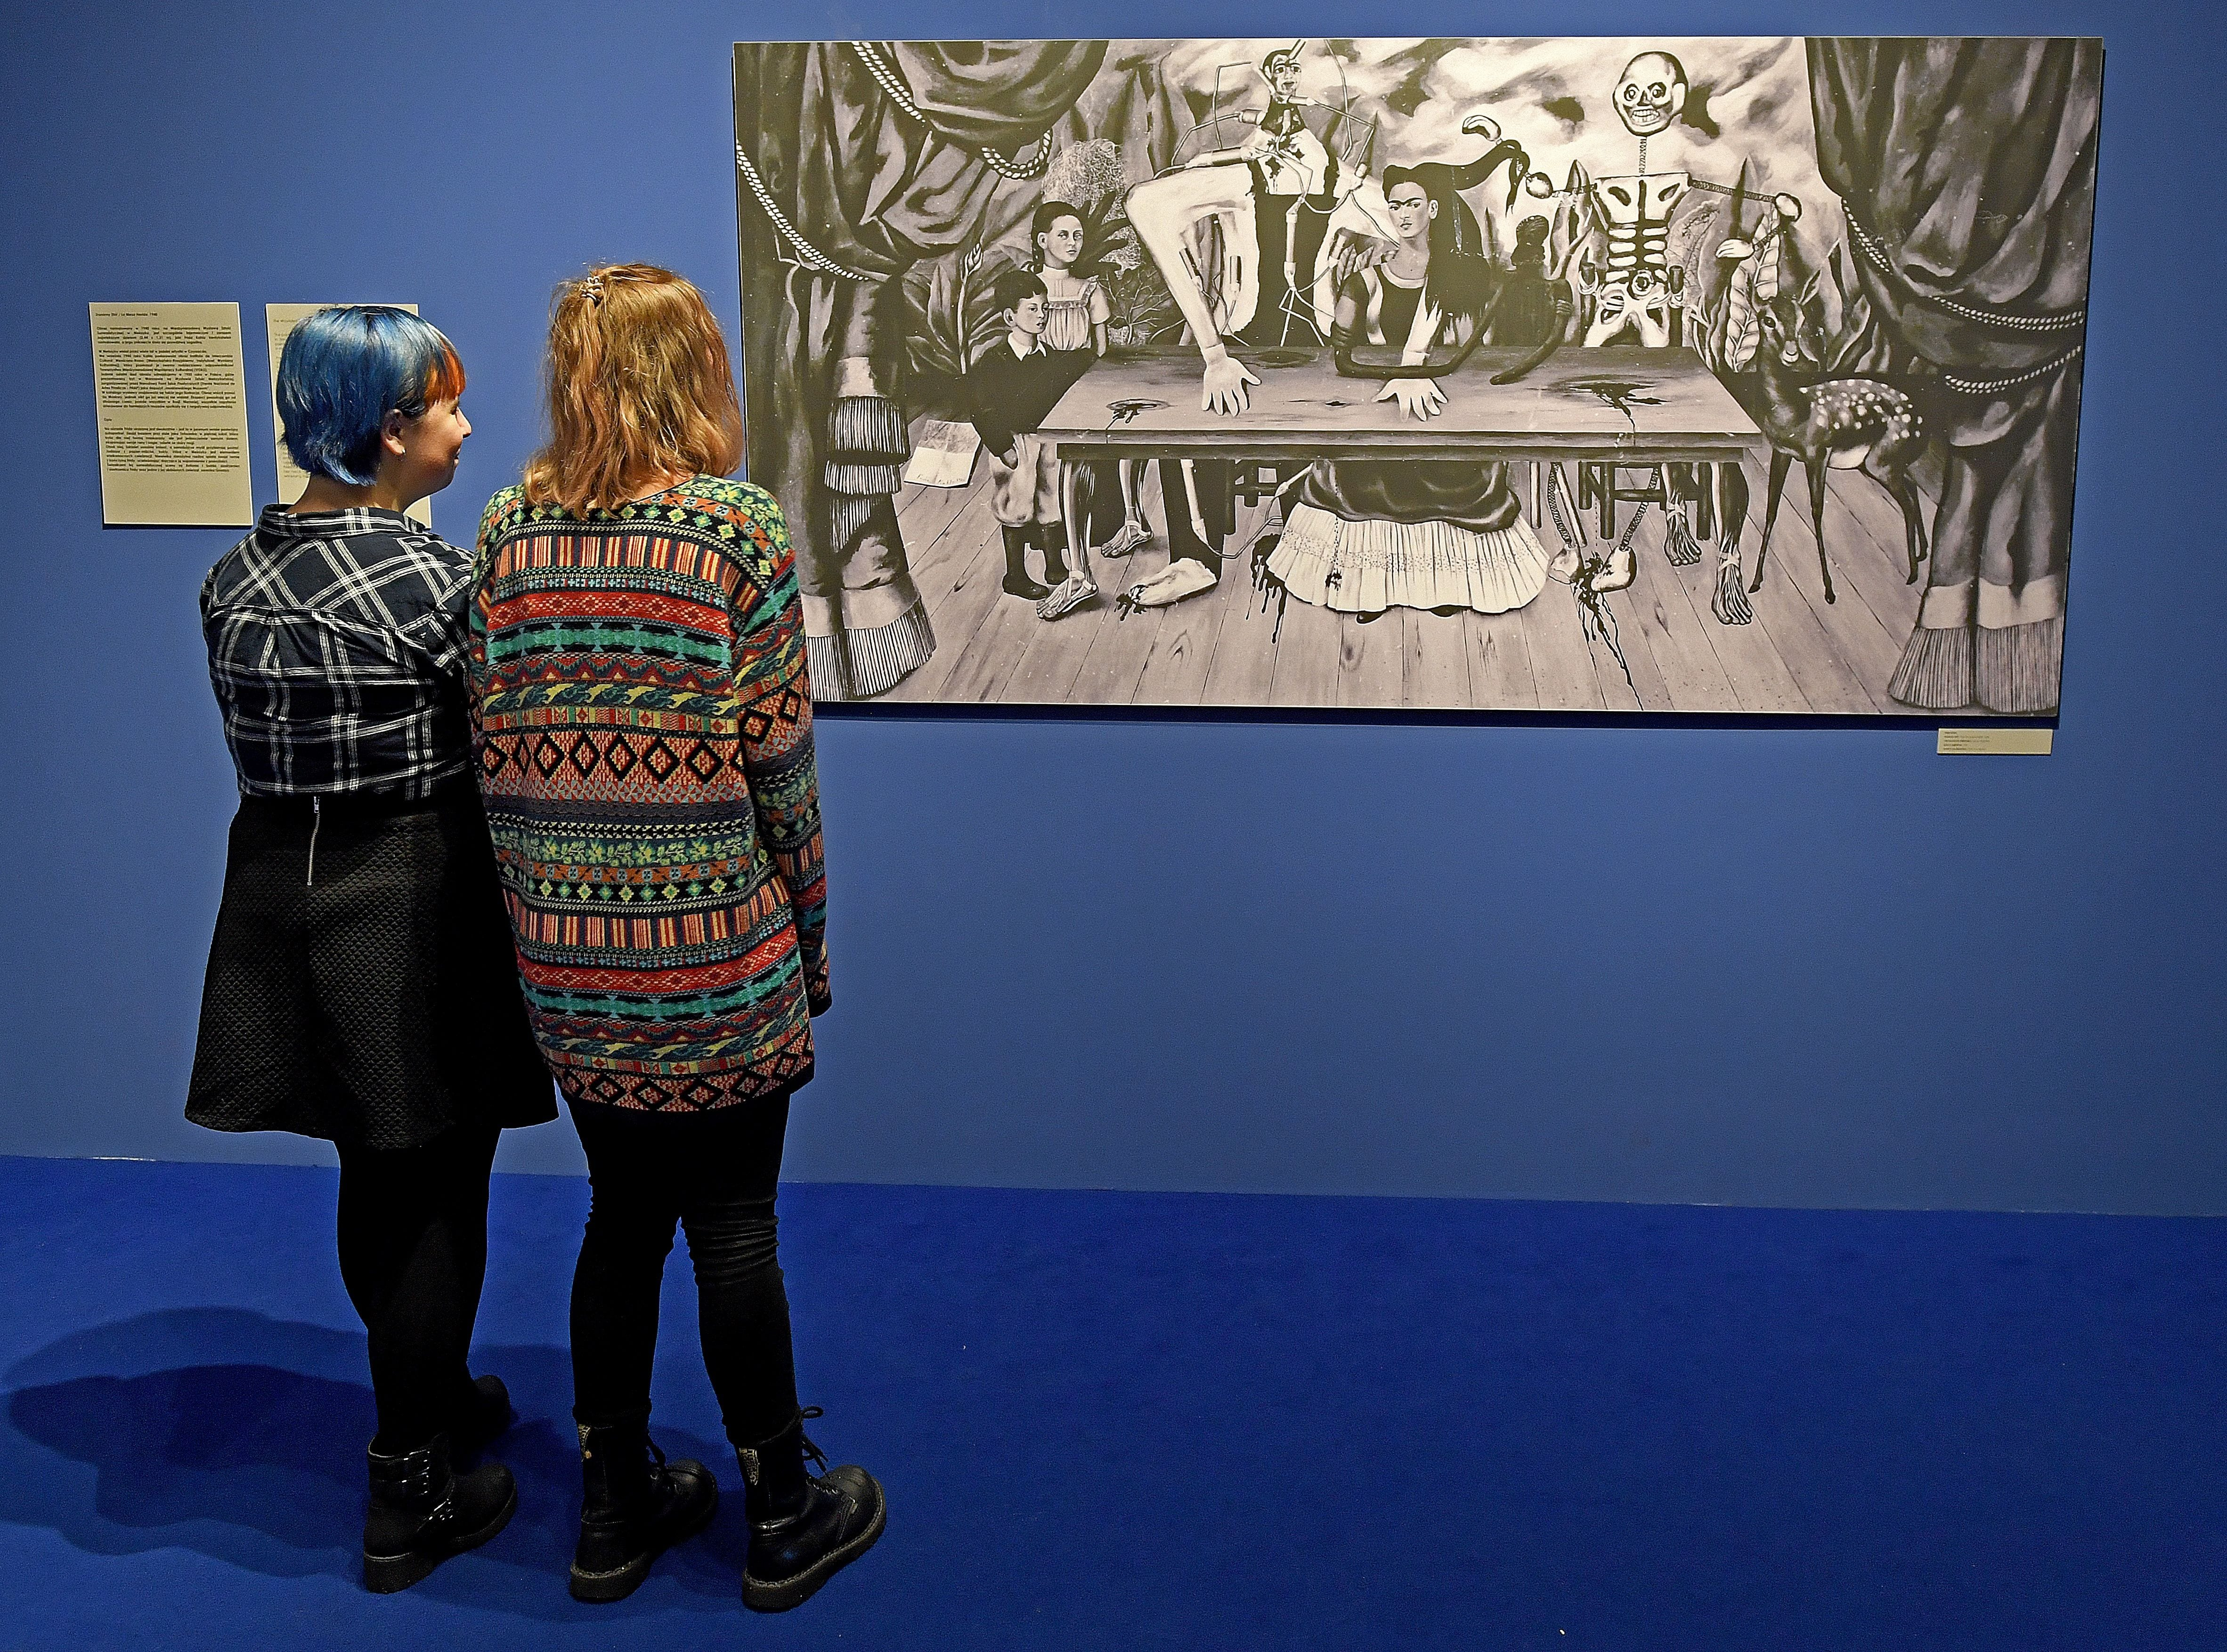 Could This New Research Change How We Experience Museums?